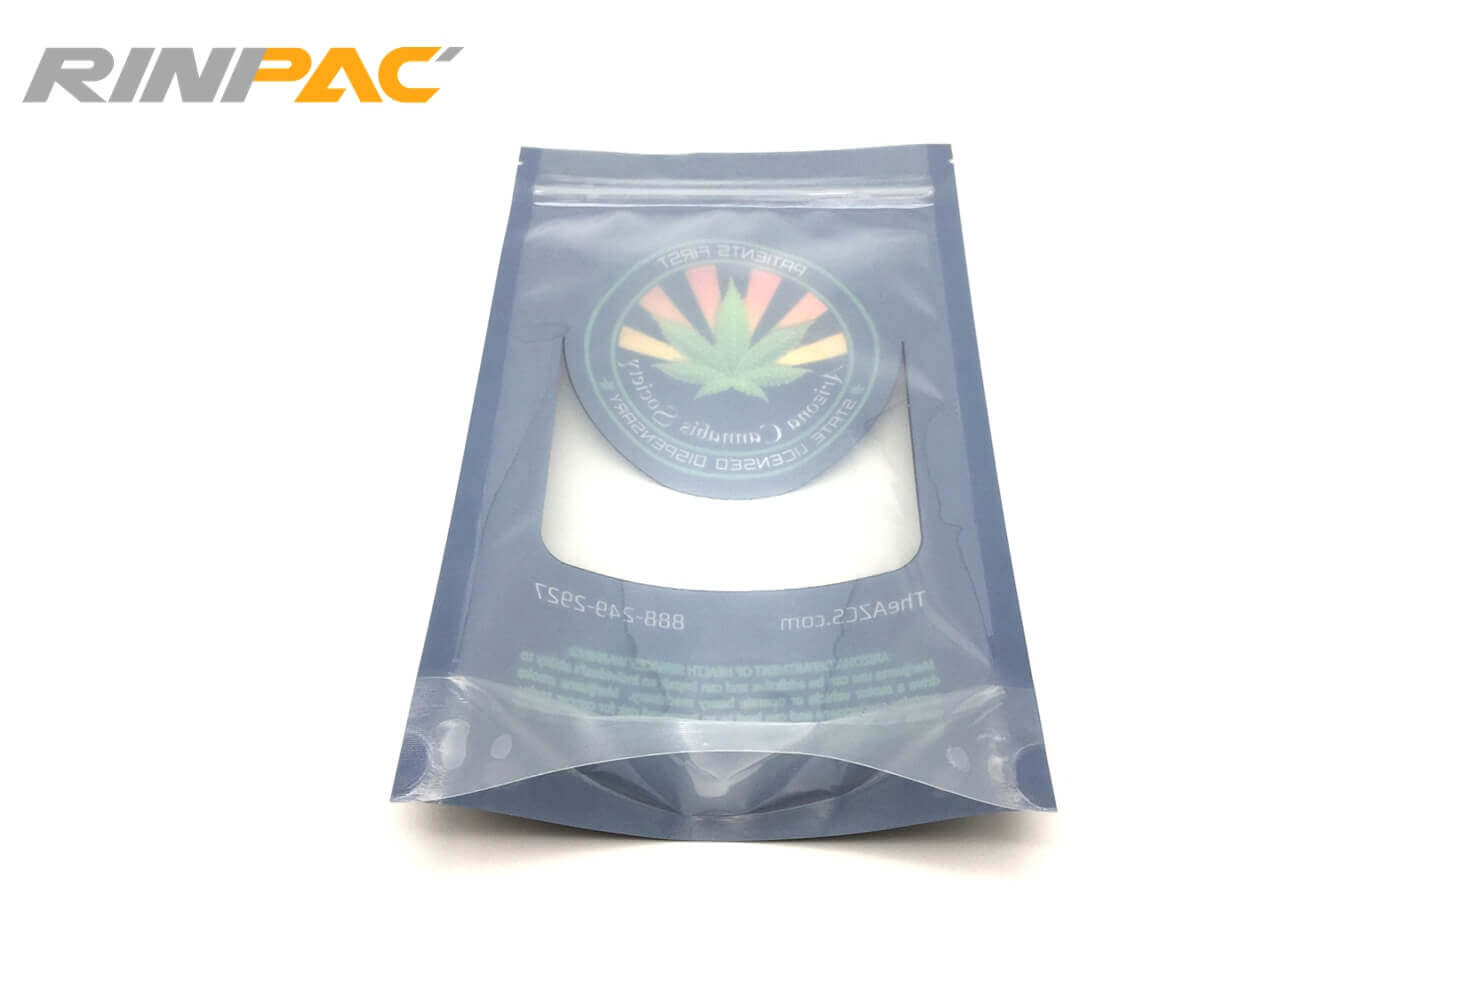 RinPAC Cannabis Packaging 3 - Cannabis Packaging